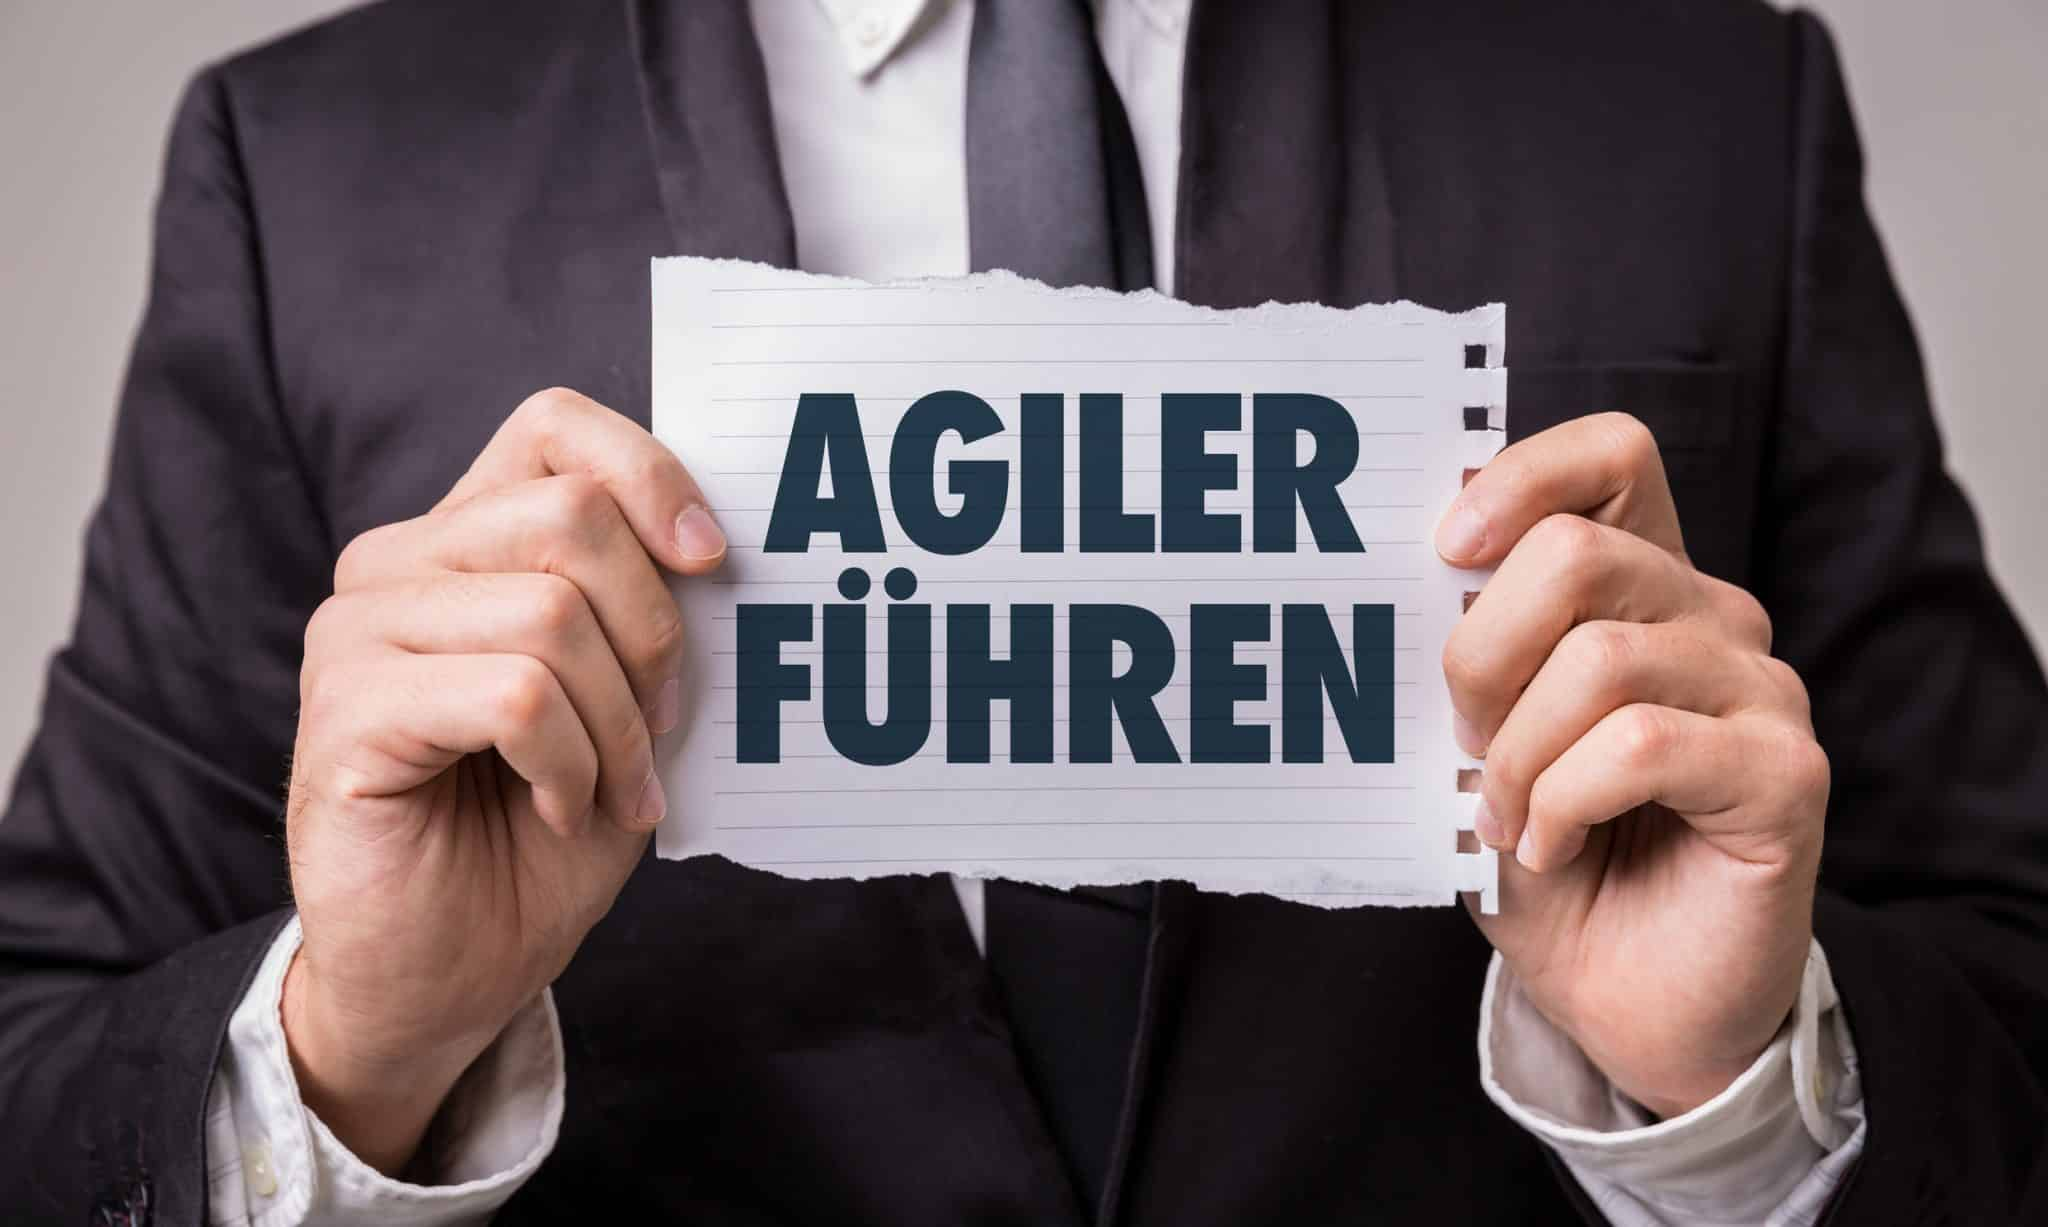 Seminar Projektmanagement - Agiles Projektmanagement mit Scrum & Co.